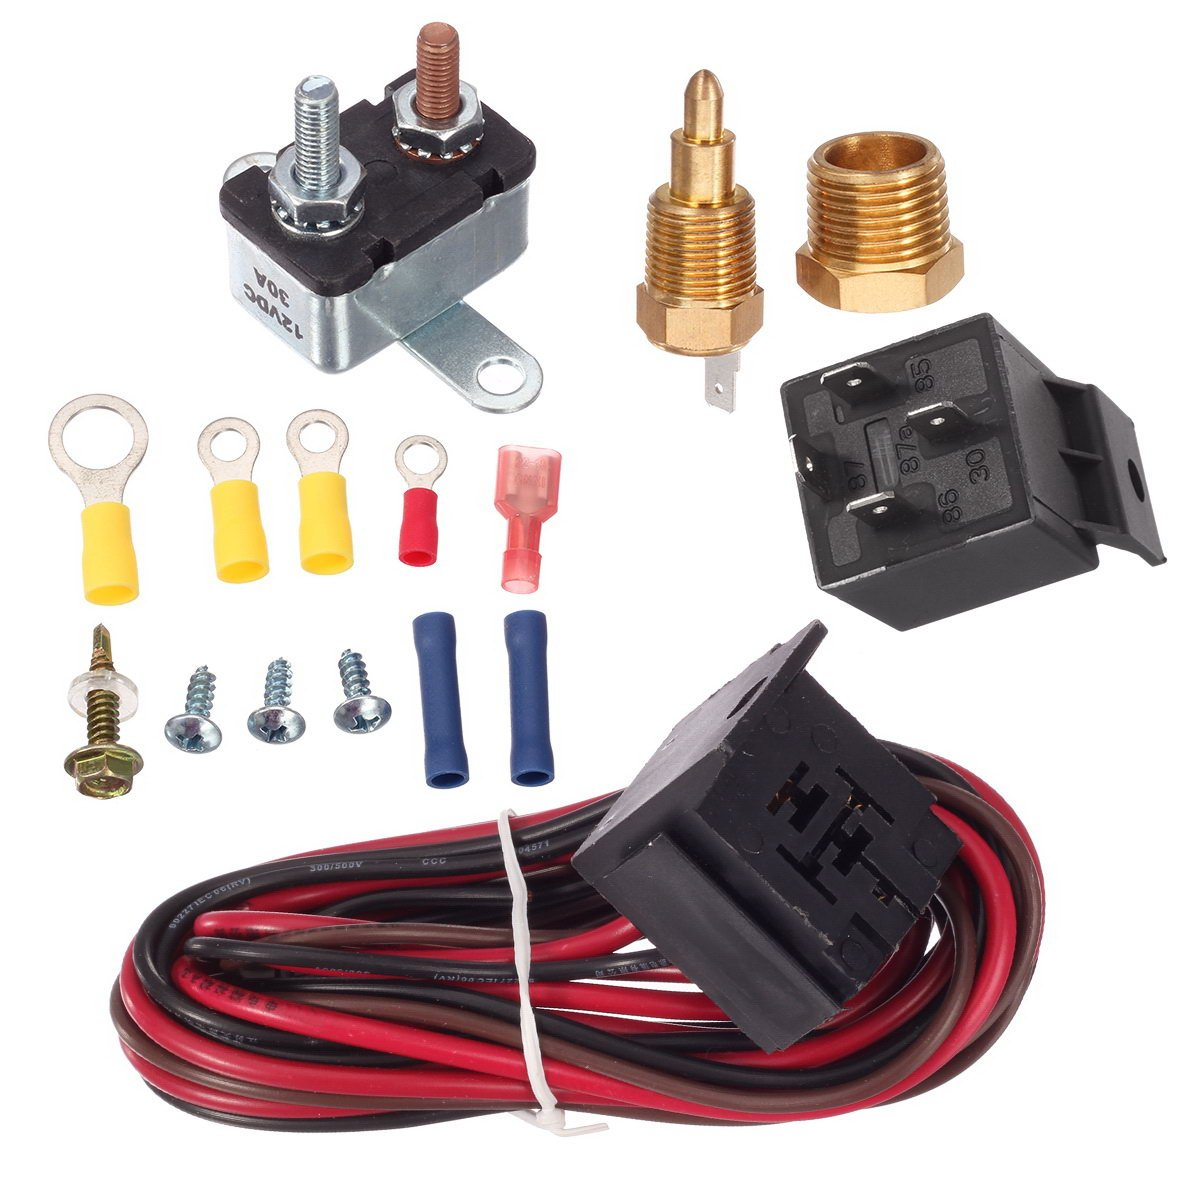 95 Mustang Cooling Fan Wiring Harness Motorcycle And Car Engine